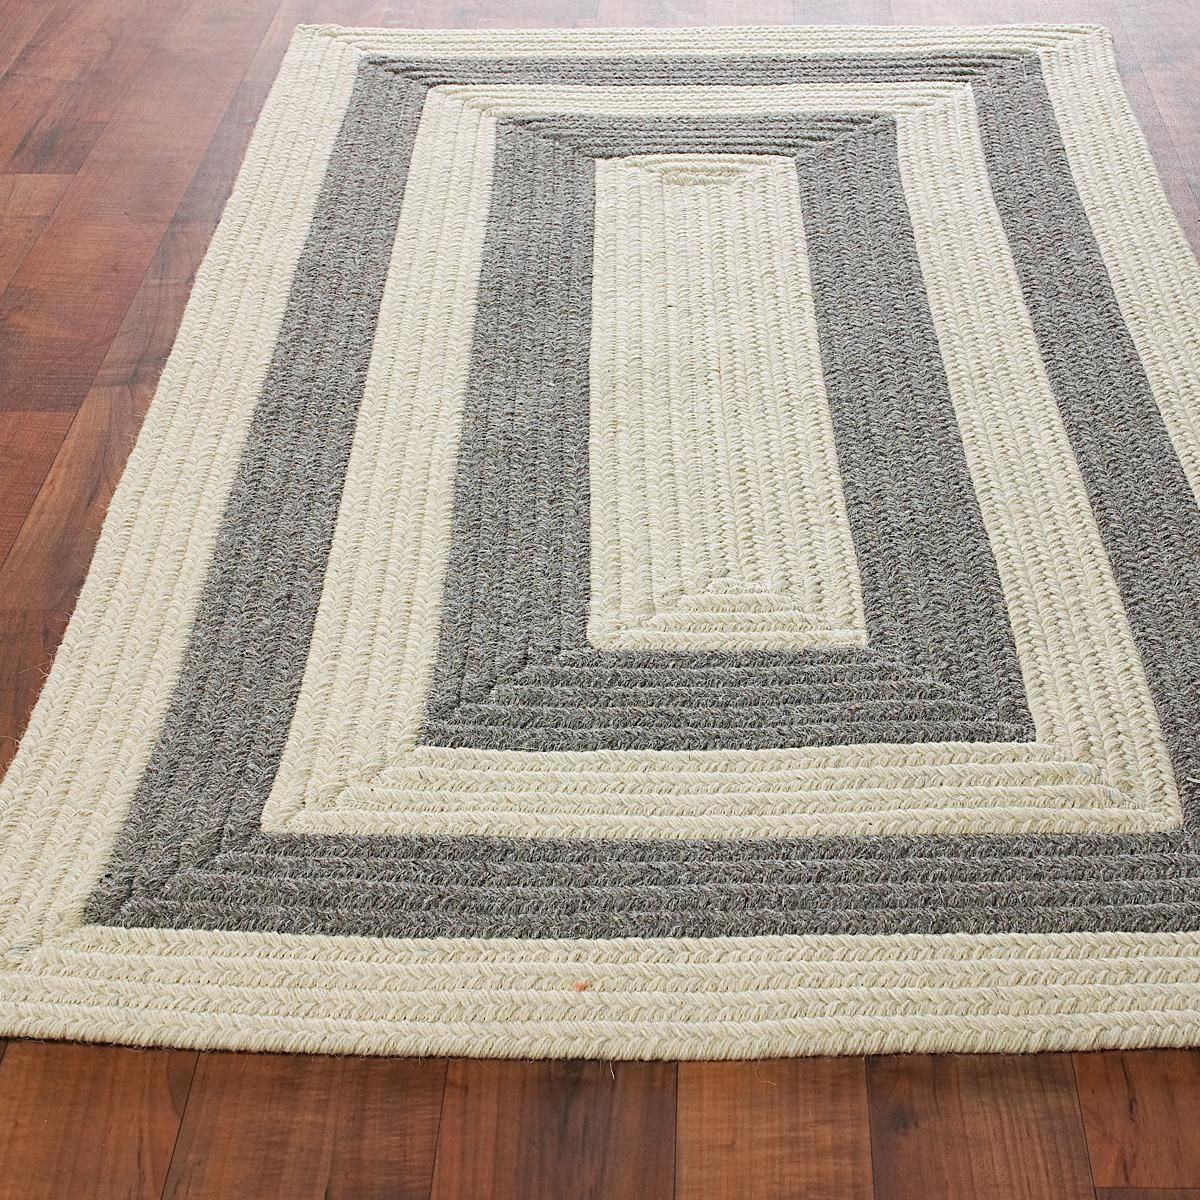 Braided Rug For Living Room: Eco-Friendly Concentric Stripe Braided Rug